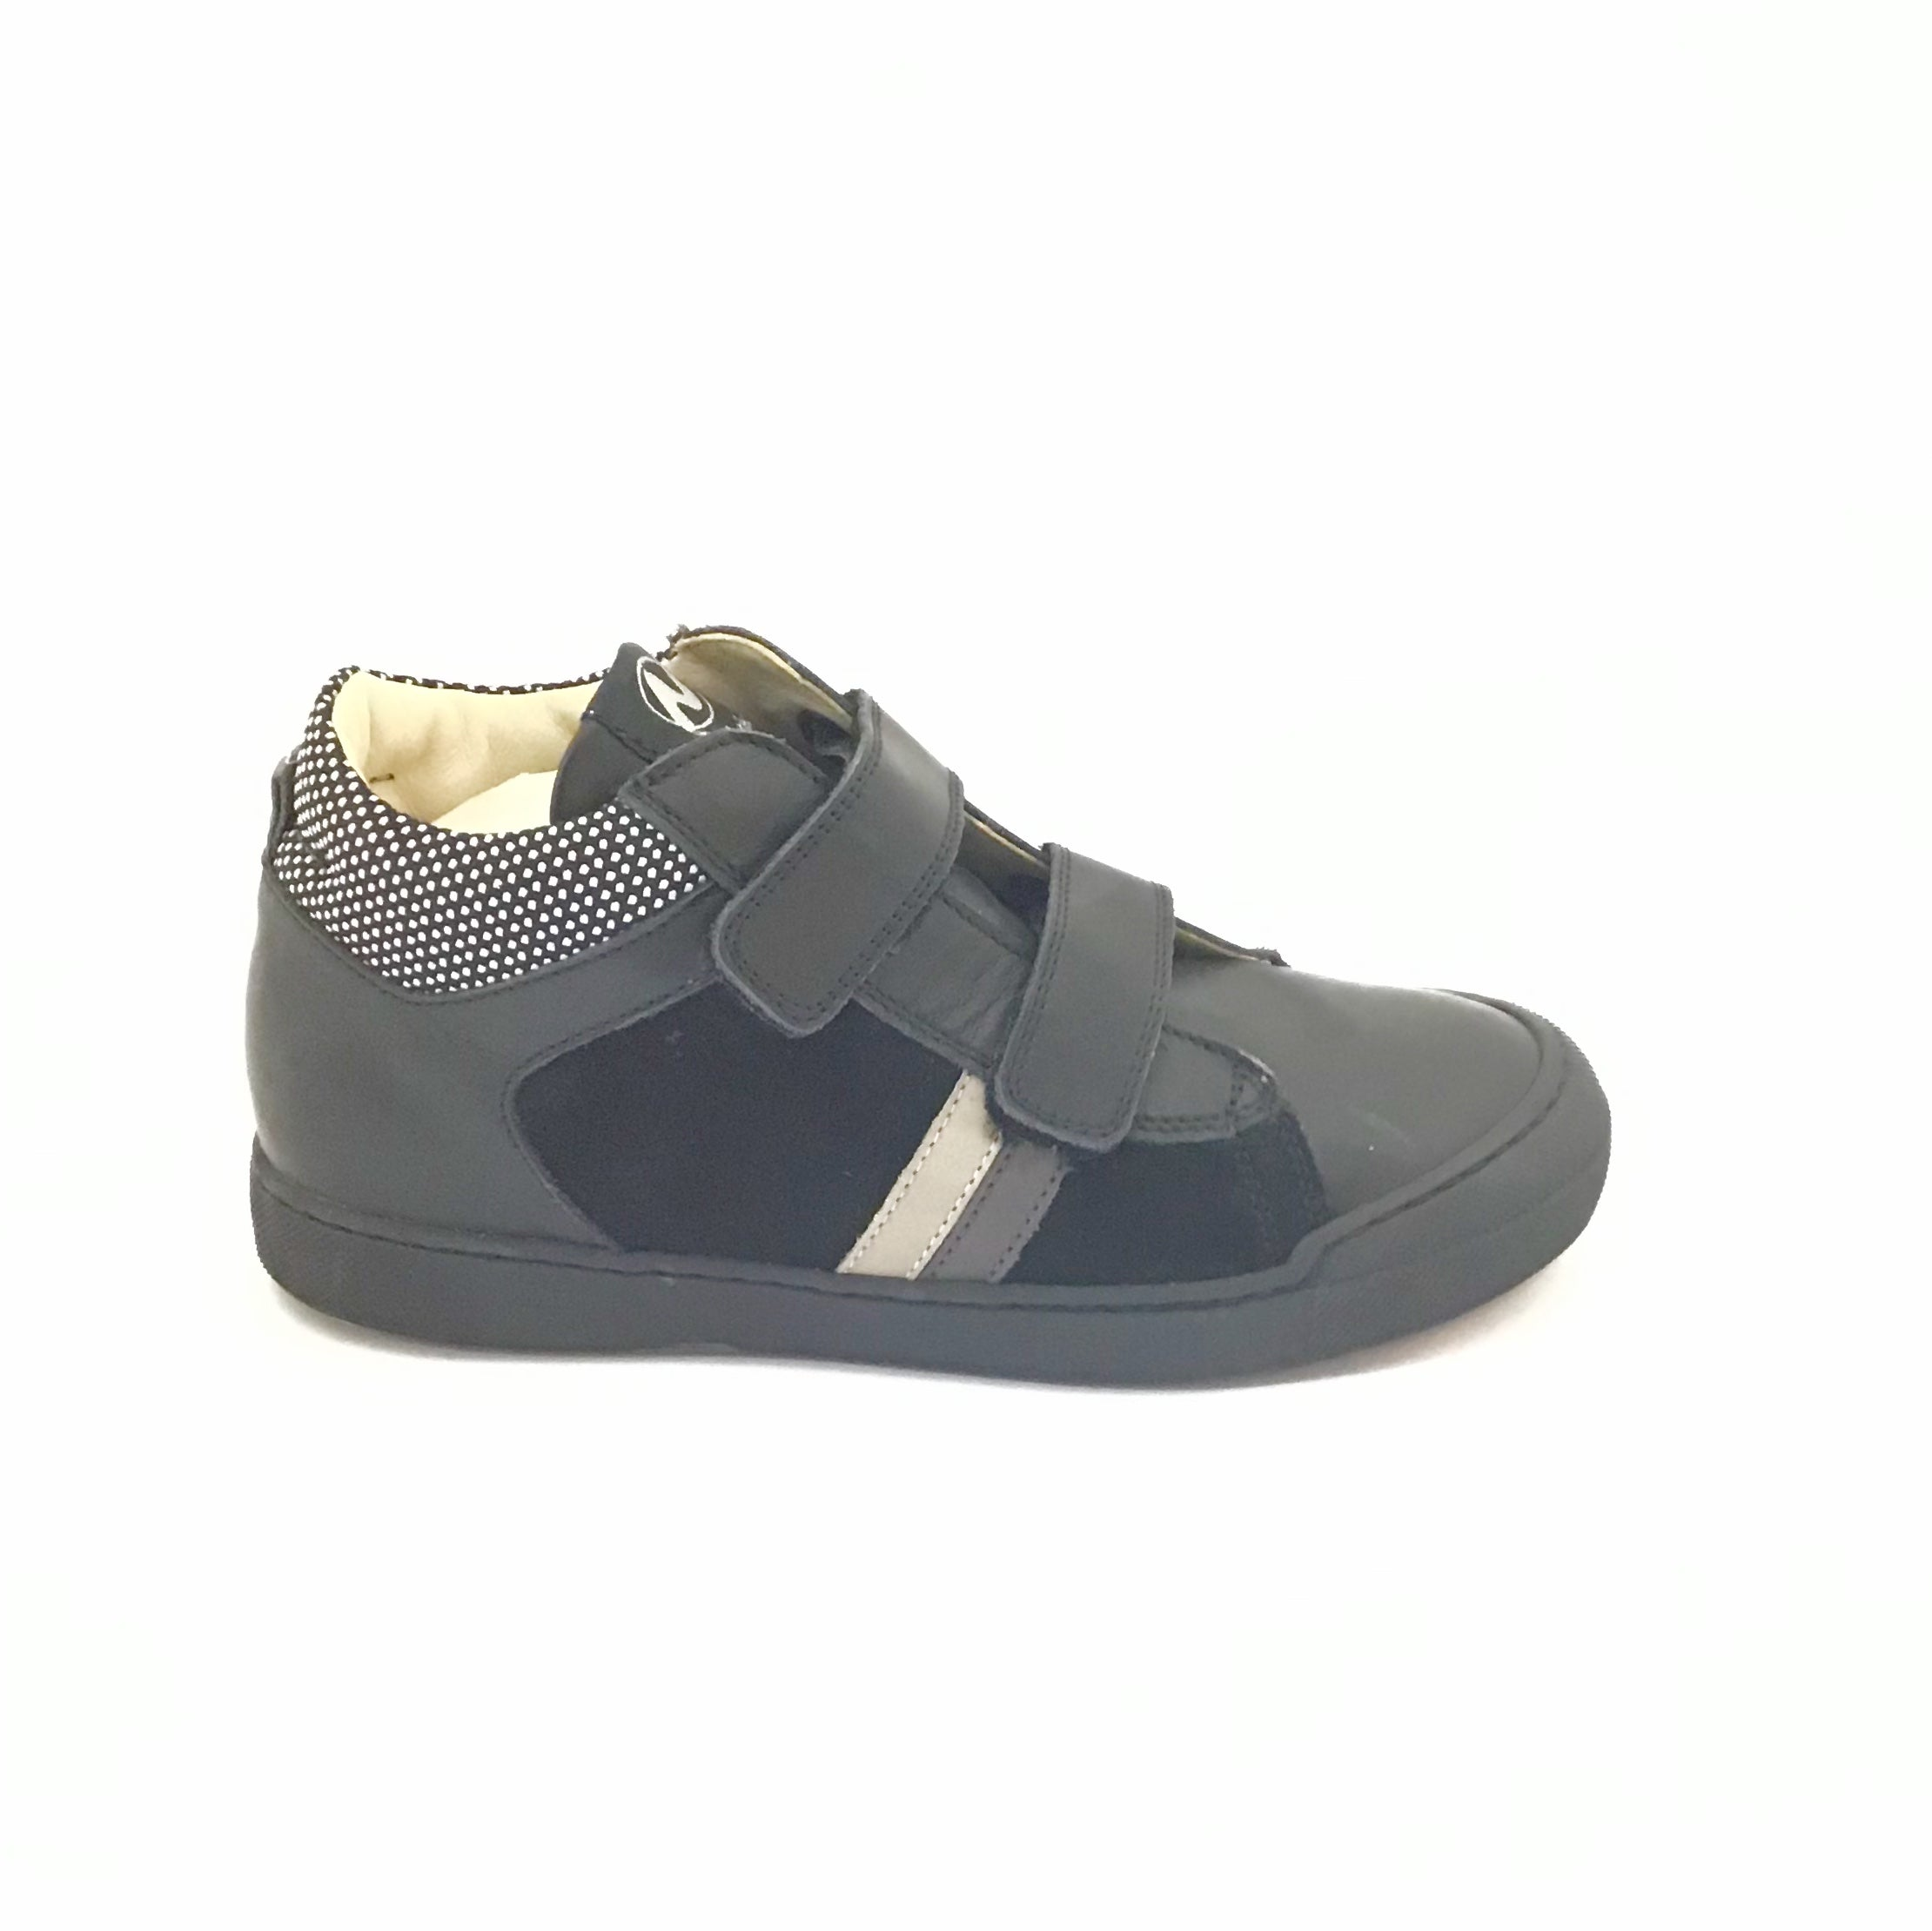 Naturino Black Sneaker with Stripes and Double Velcro